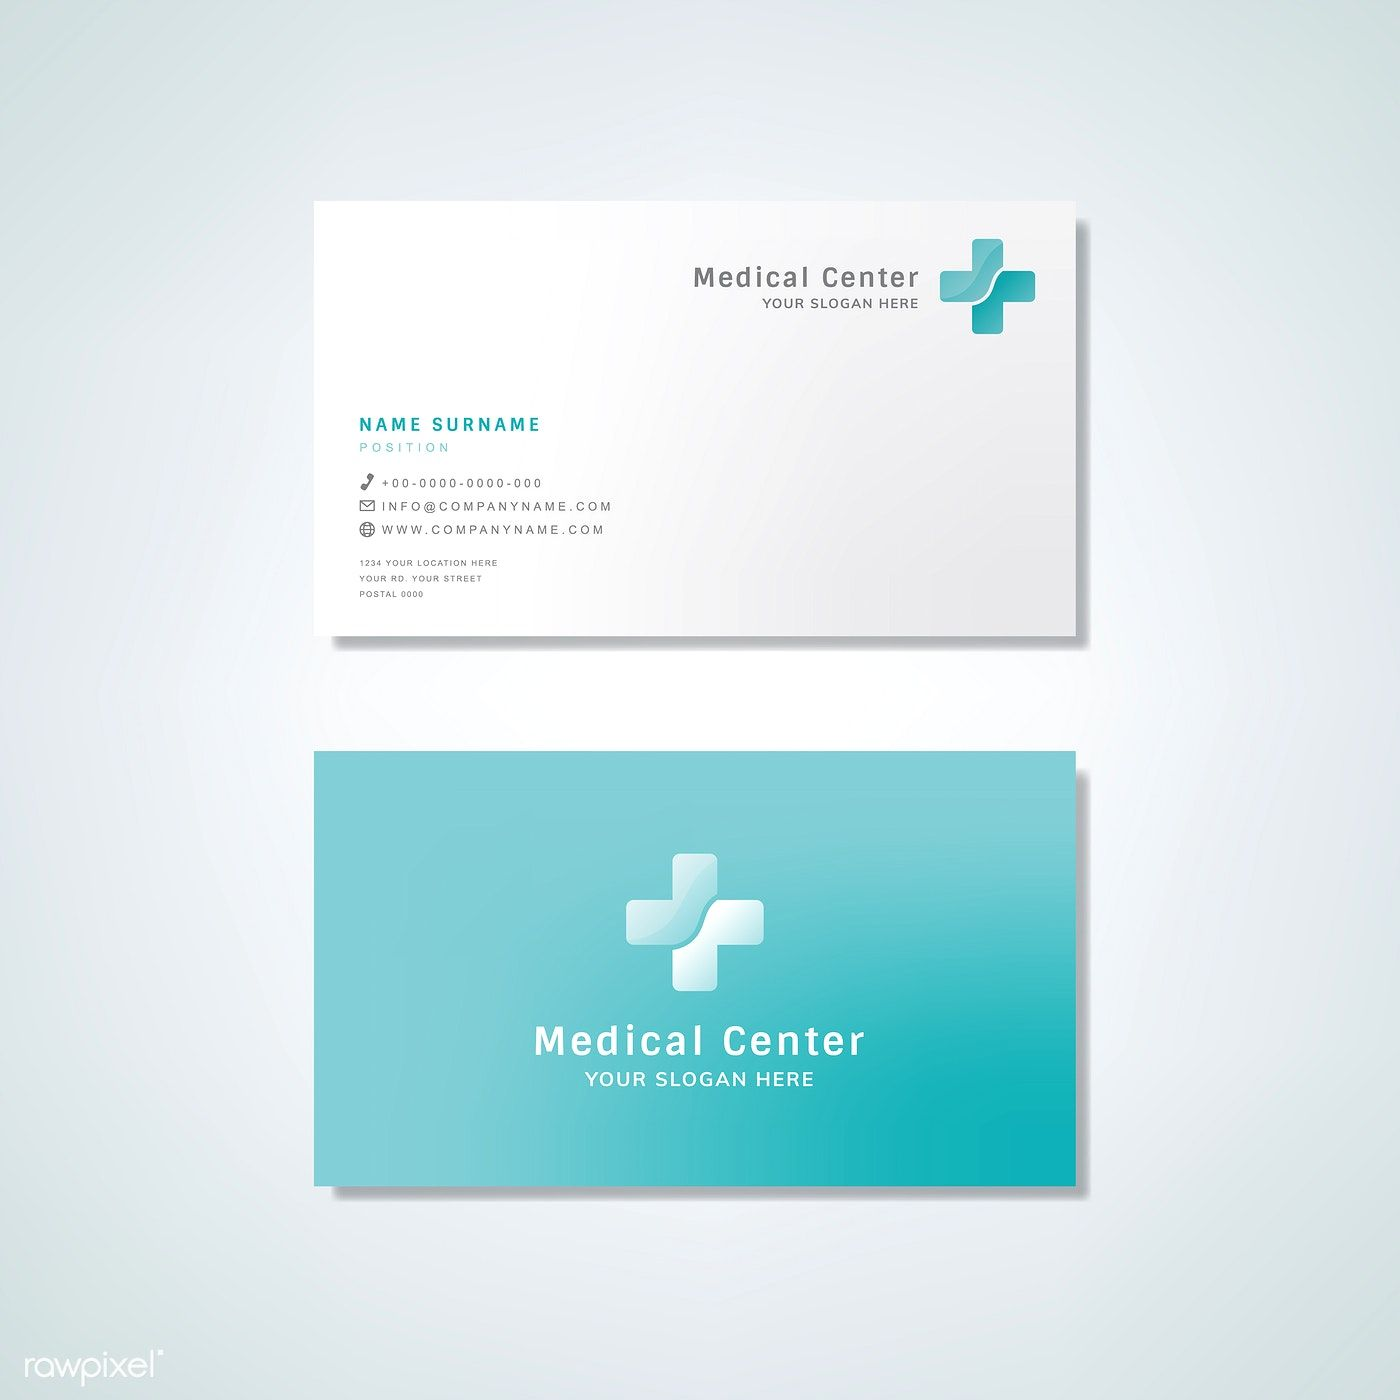 Medical Professional Business Card Design Mockup Free Image By Rawpixel Com Medical Business Card Design Business Card Mock Up Medical Business Card